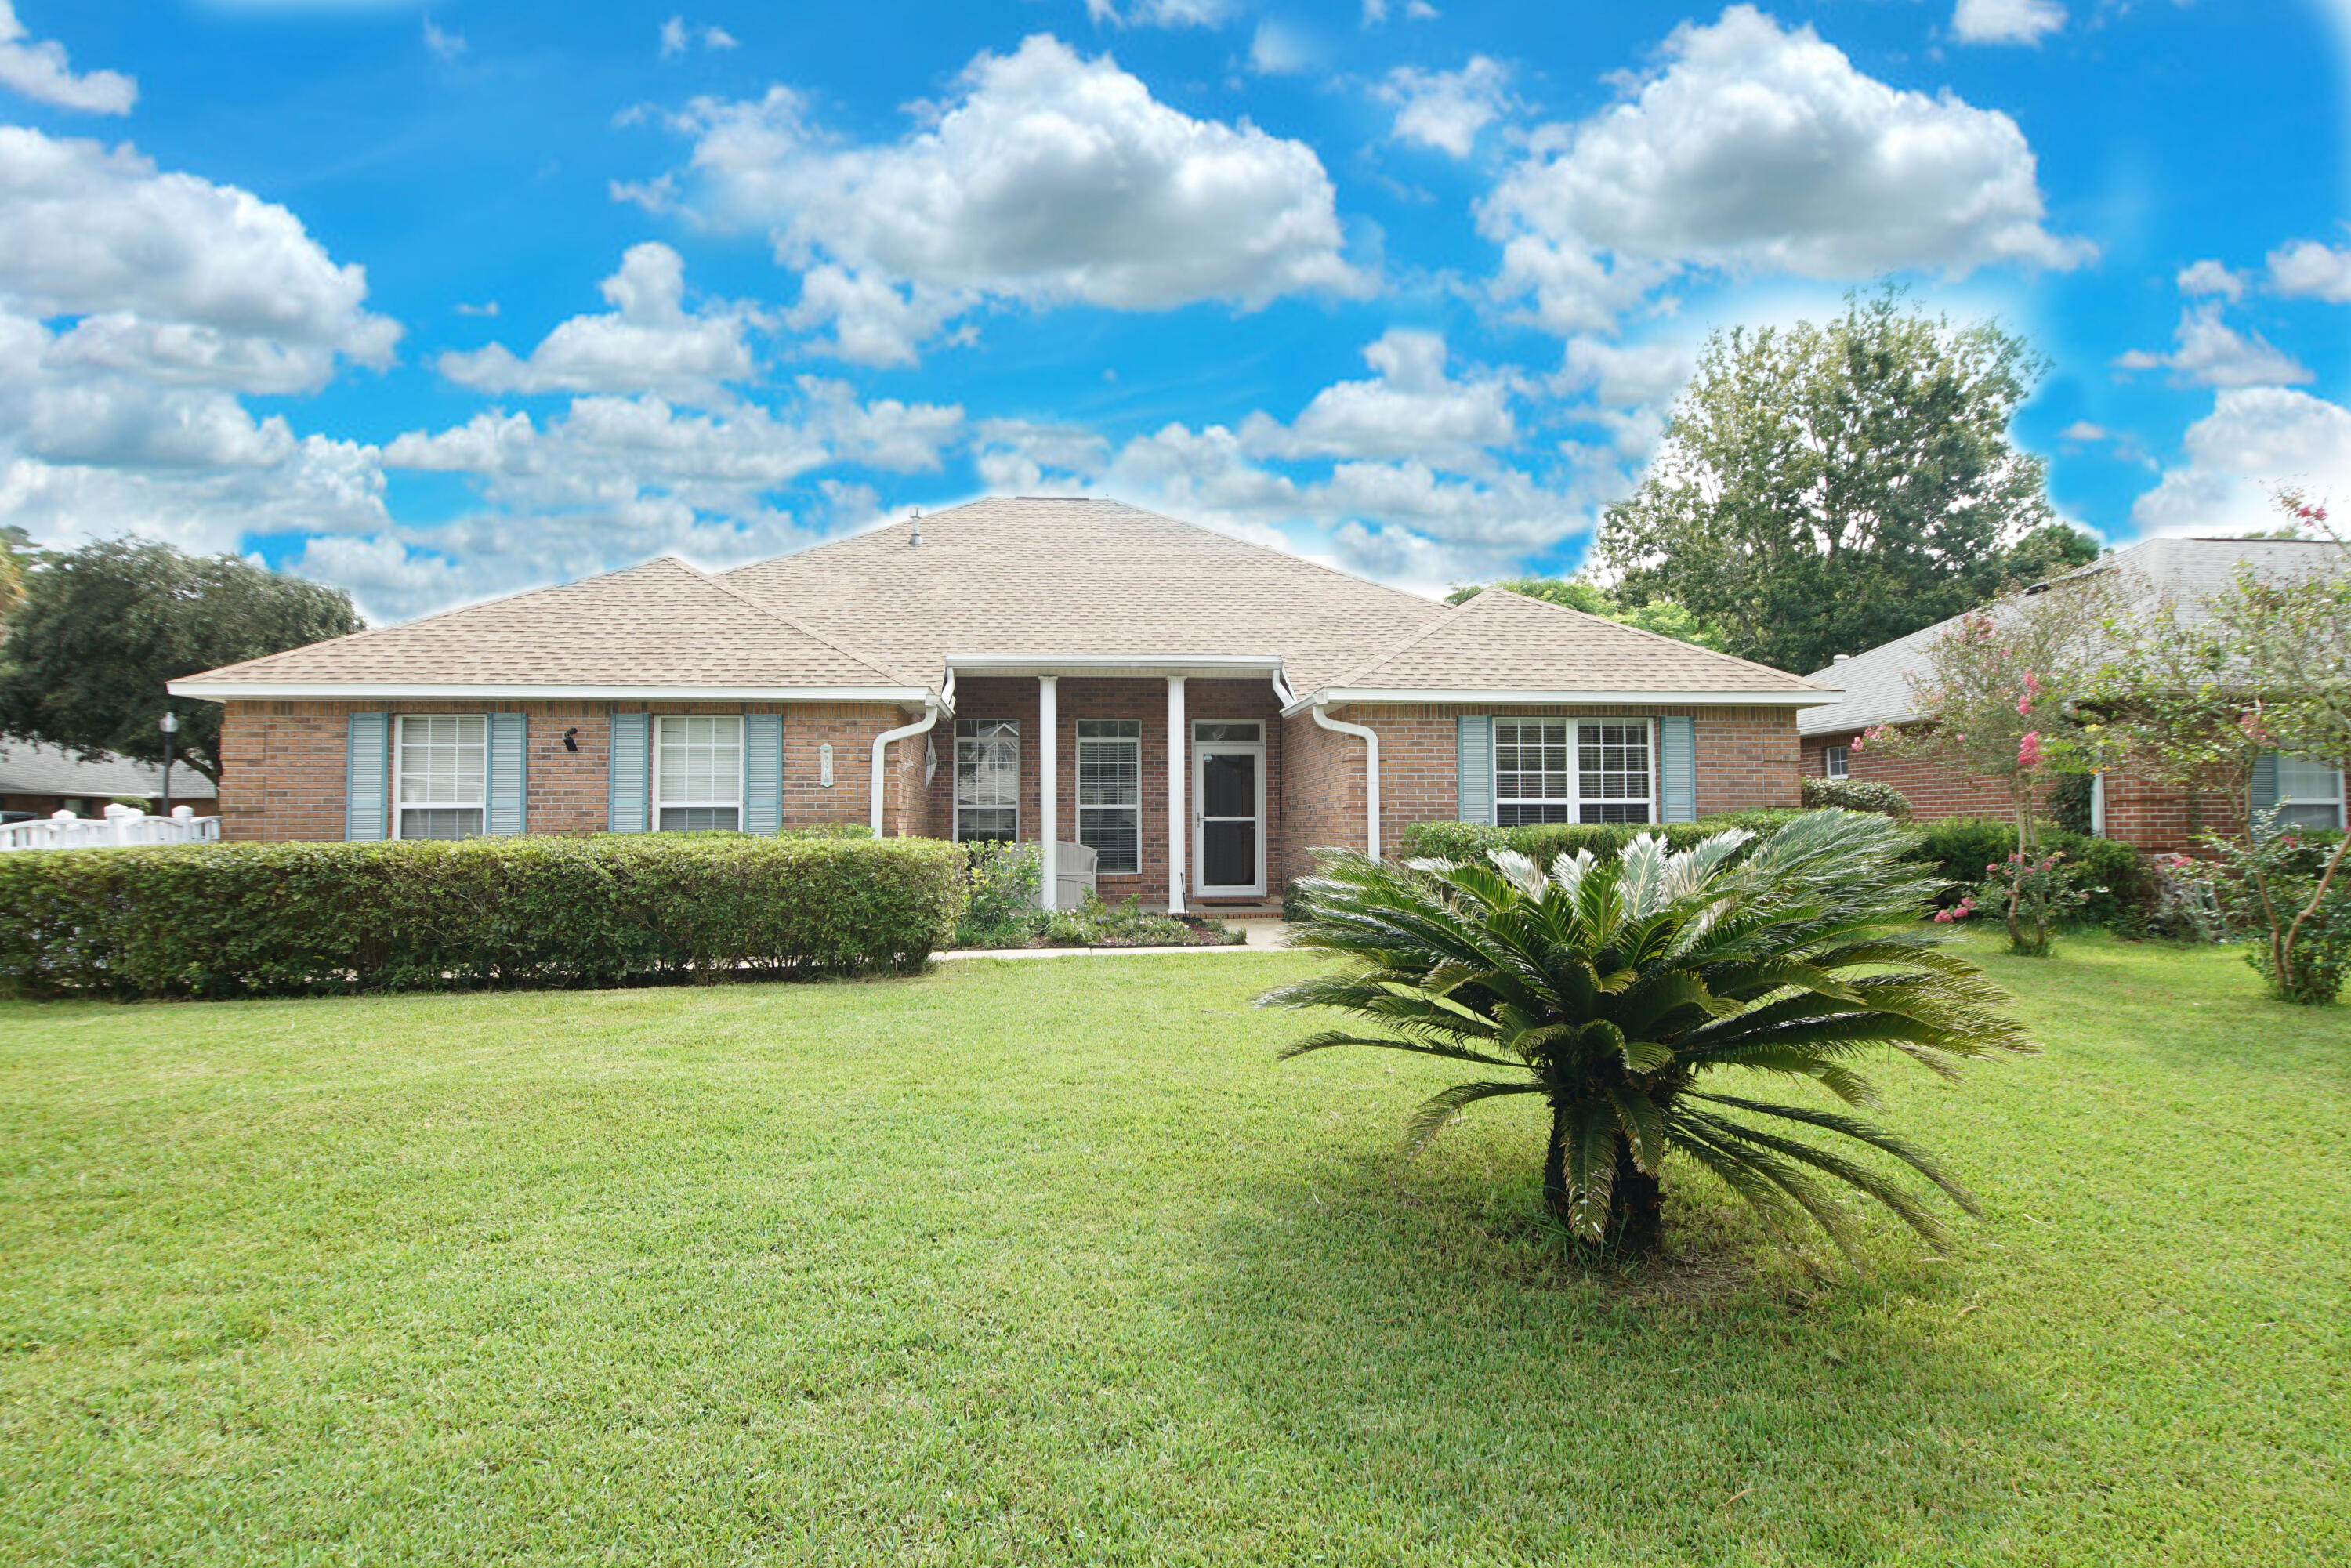 This lovely 4 bedroom home is located  in the highly desirable gated community of Parkwood Estates down the street from Bluewater Elementary School. It is also conveniently located to shopping and just a short drive to the beautiful Destin beaches.  Split bedroom floor plan with Master on one side and three additional bedrooms on the other.  One of the additional bedrooms is located in the front of the home and could also be used as an office.  The other two bedrooms are on the other end with a bathroom in between. Spacious Master bedroom with a walk-in closet and Master bath with dual vanity sinks, garden tub and separate shower. Australian cypress wood throughout the main living areas and in the Master bedroom, carpet in additional bedrooms, tile in bathrooms and laundry room, cozy